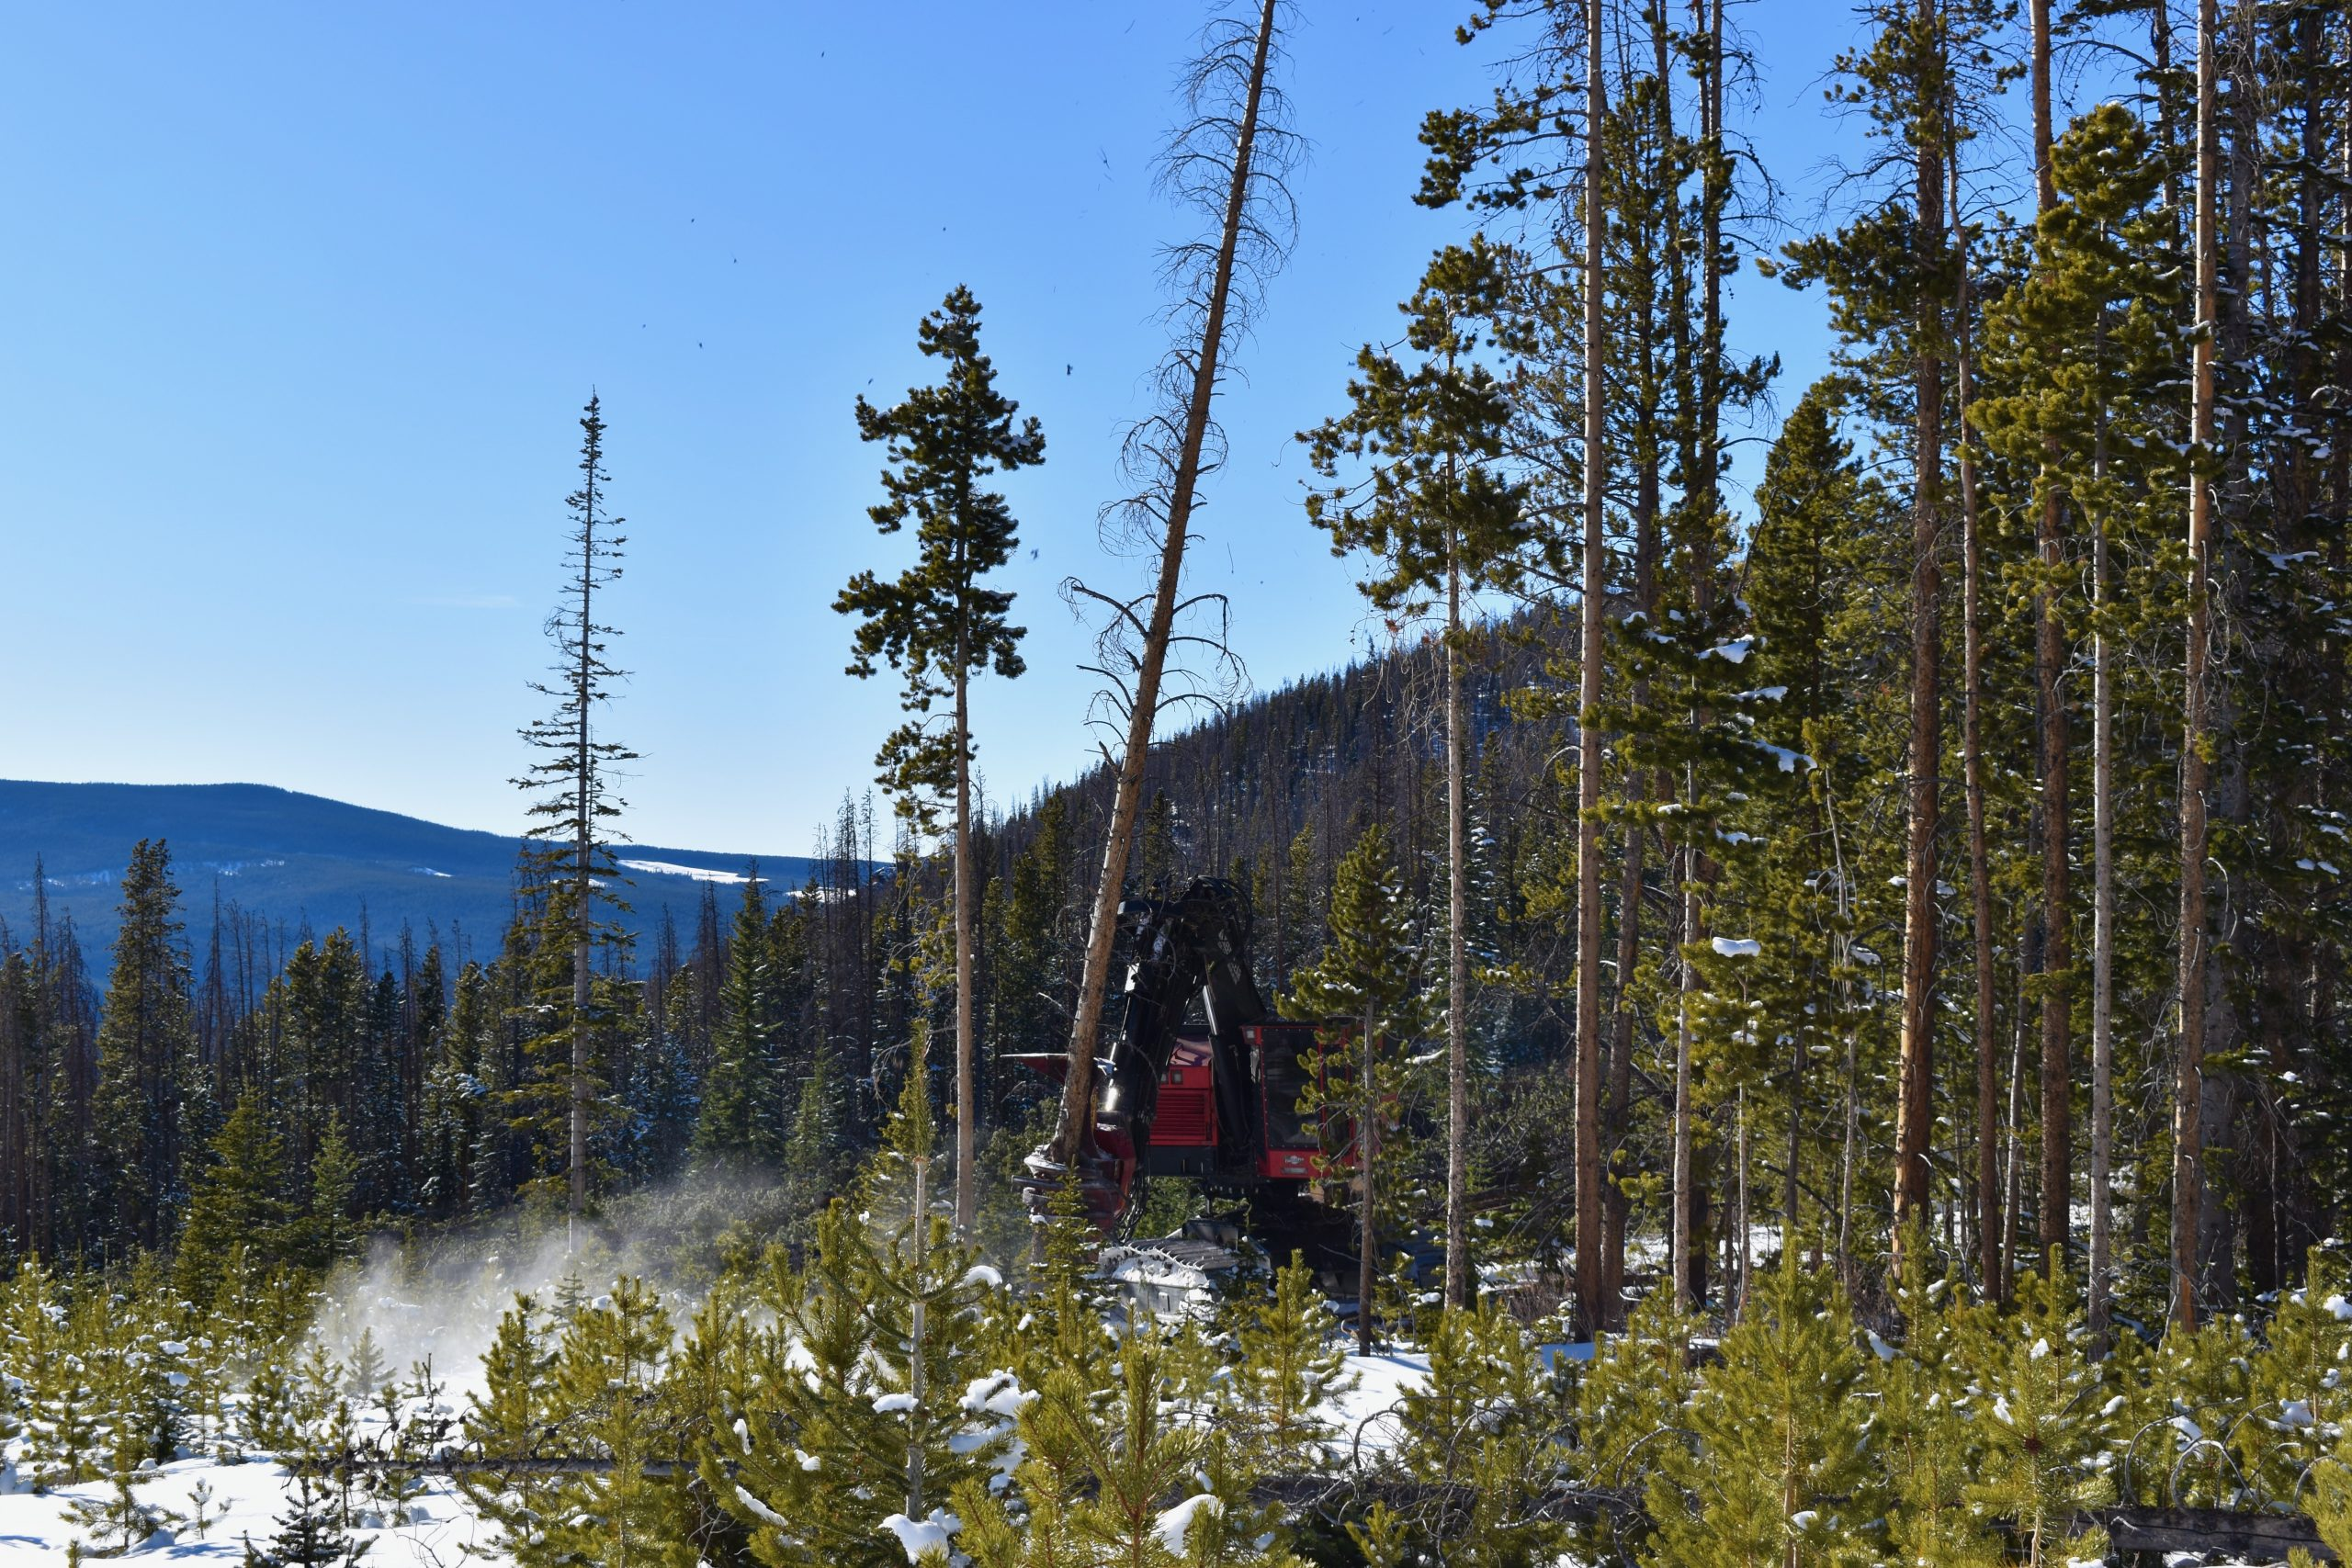 After catastrophic wildfires, can logging help save Colorado's forests?